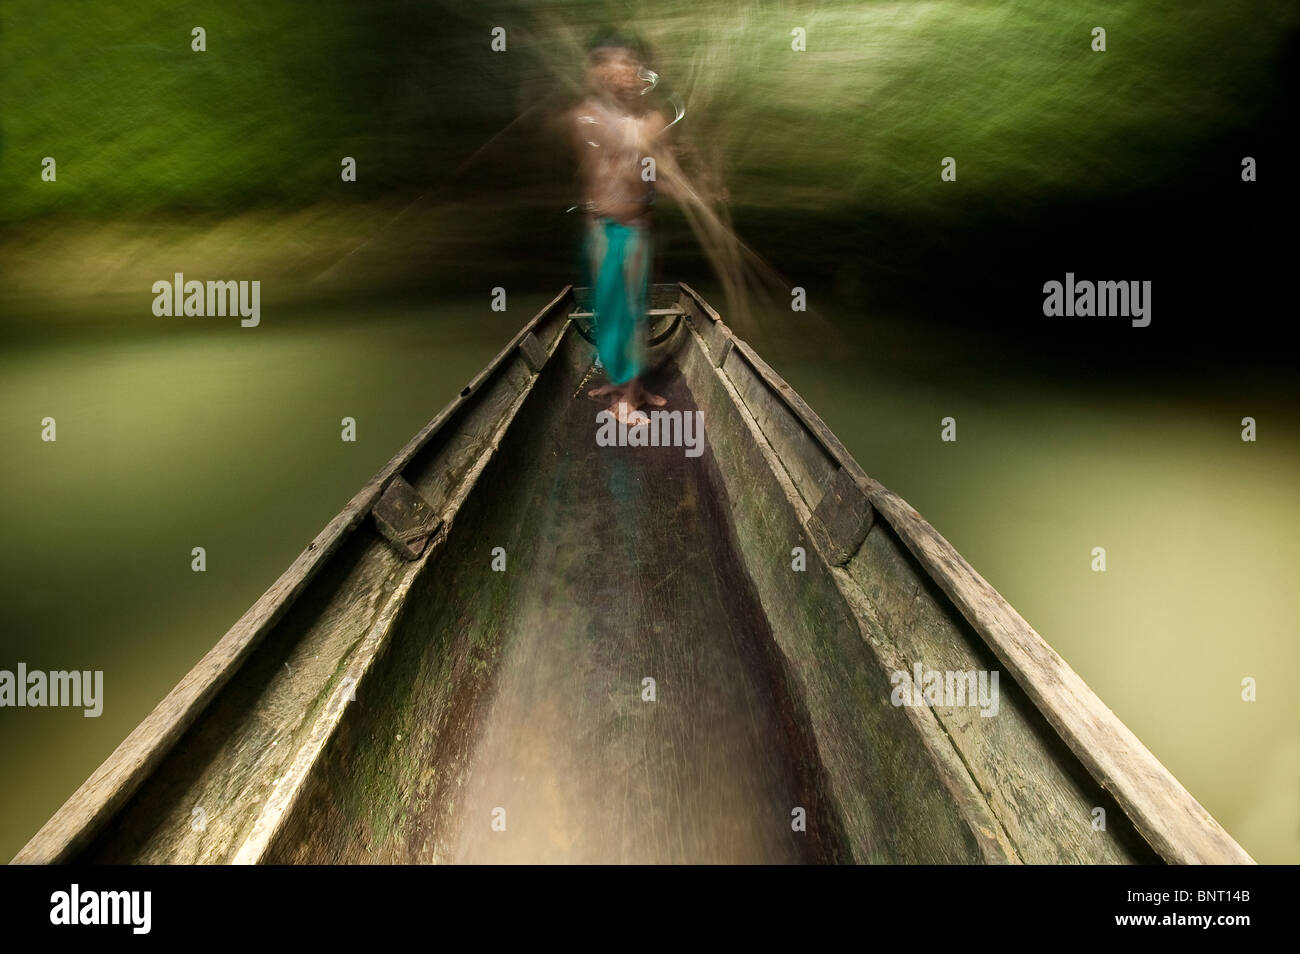 Embera indian man in his boat on Mogue river in the Darien province, Republic of Panama. Stock Photo